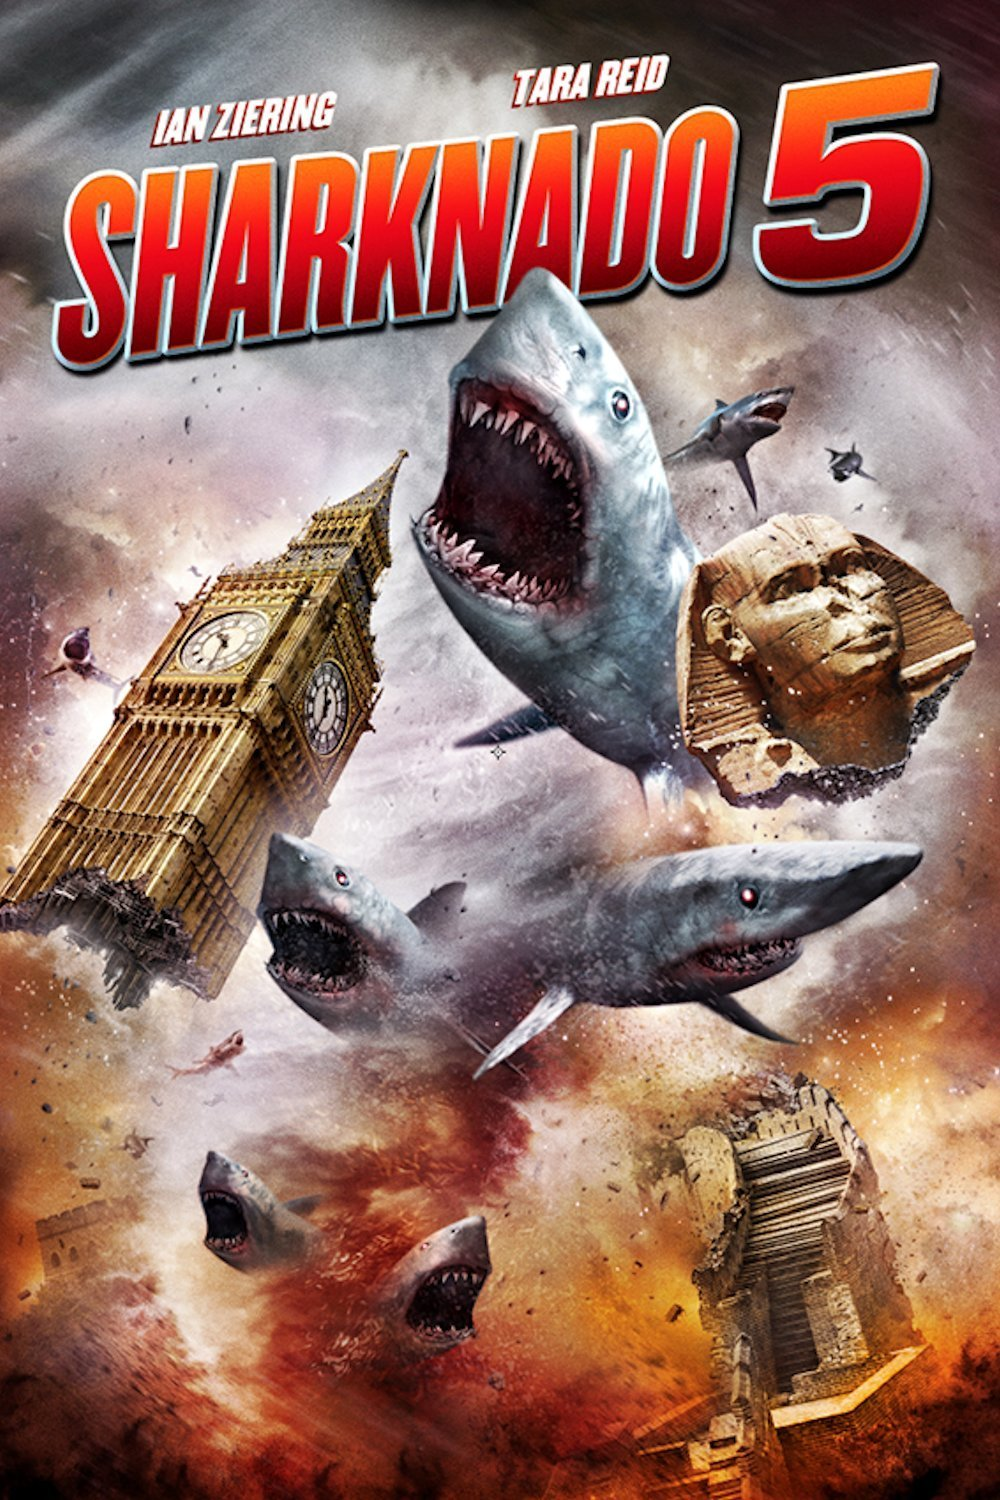 Sharknado 5 Enjambre global